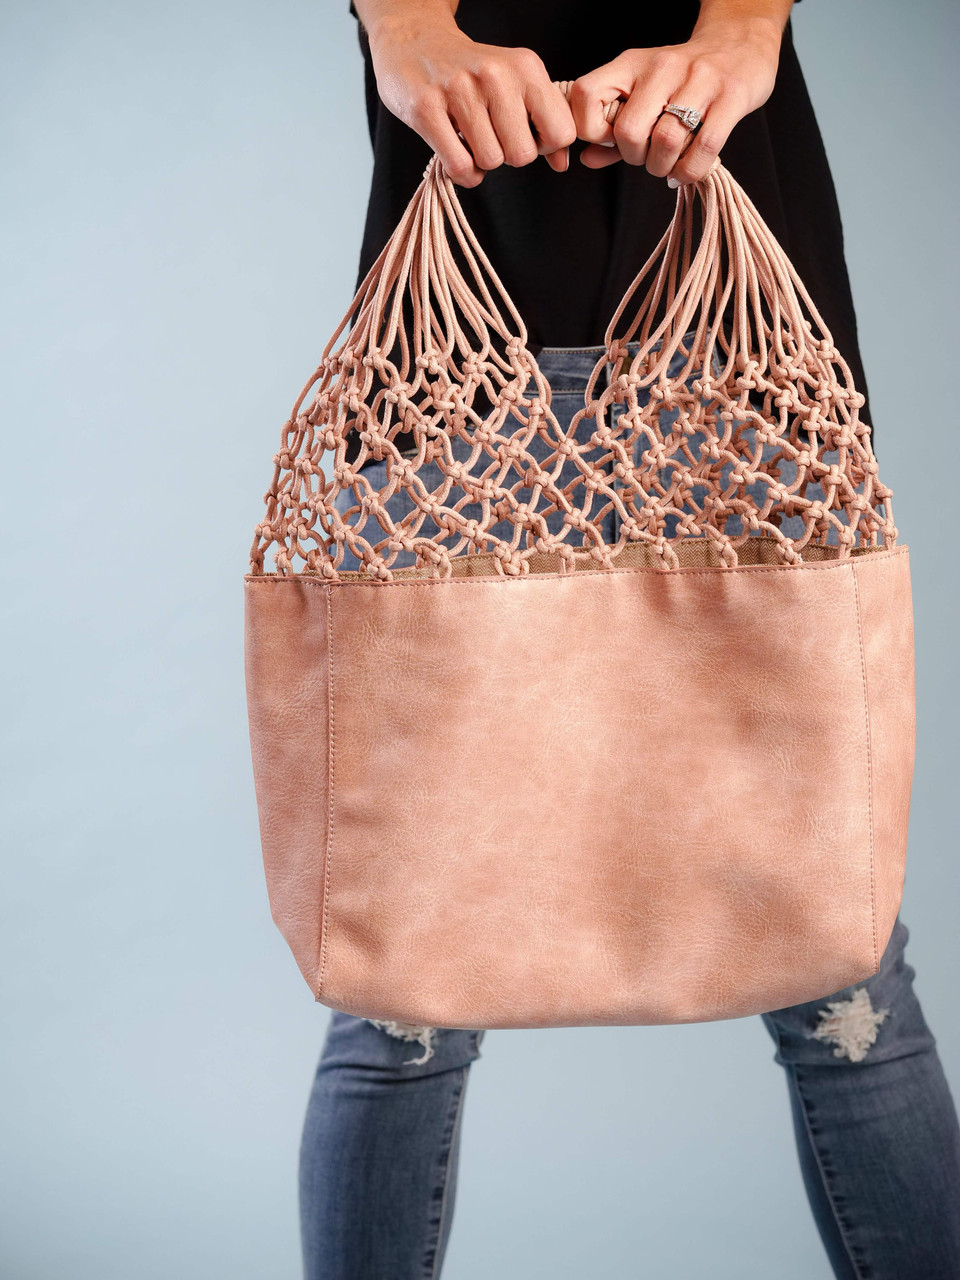 faux leather pink satchel fishnet tote